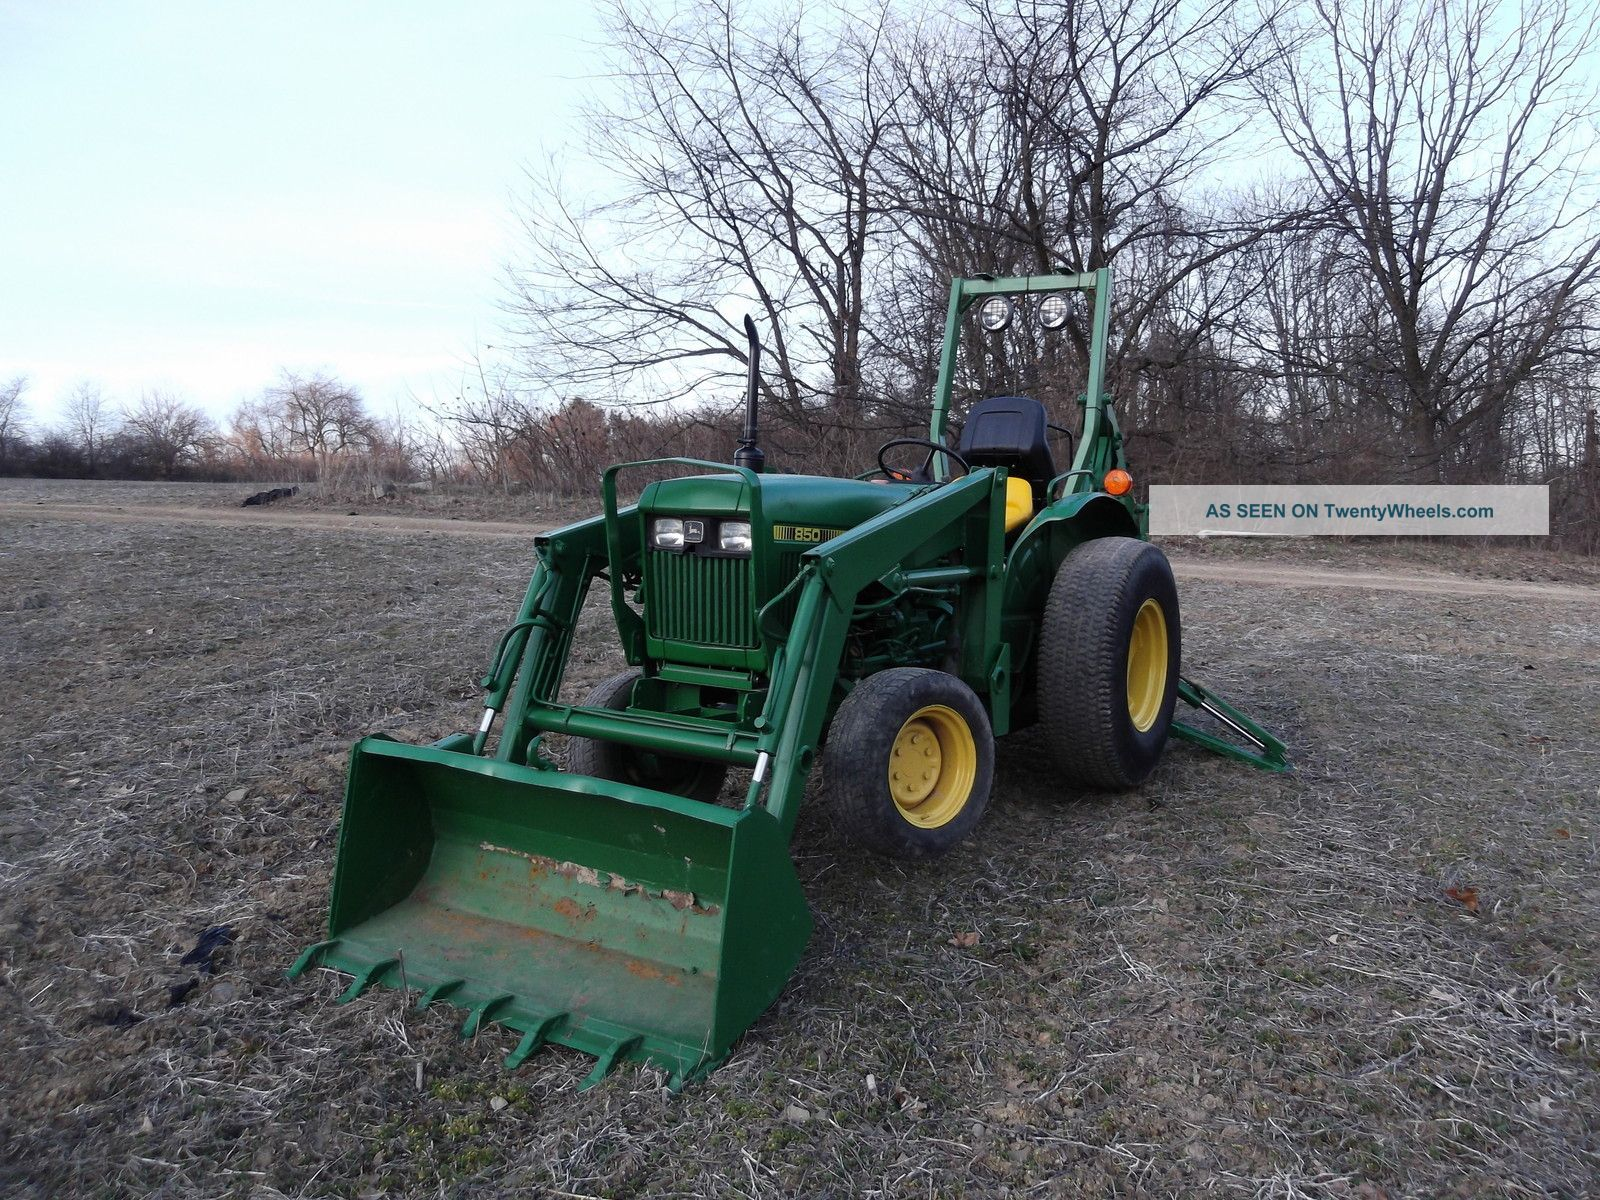 John Deere 850 4wd Diesel Tractor With Loader And Backhoe